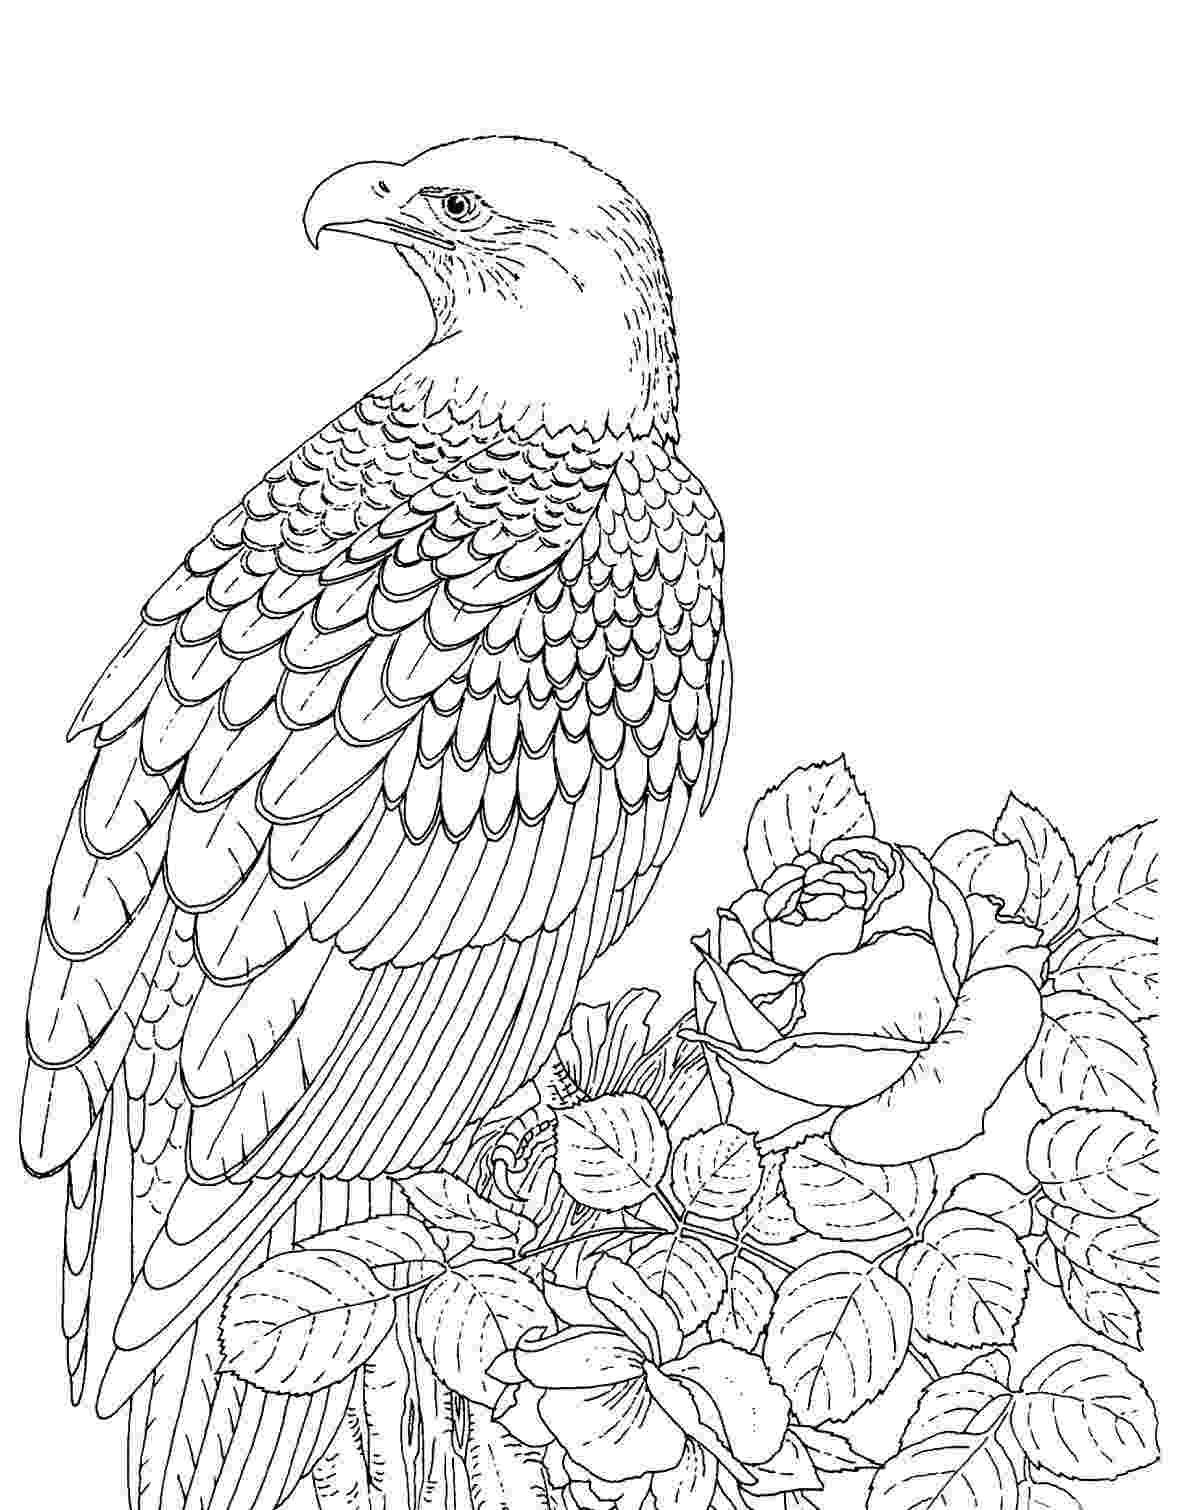 bald eagle coloring pages printable bald eagle coloring pages download and print for free eagle printable pages coloring bald